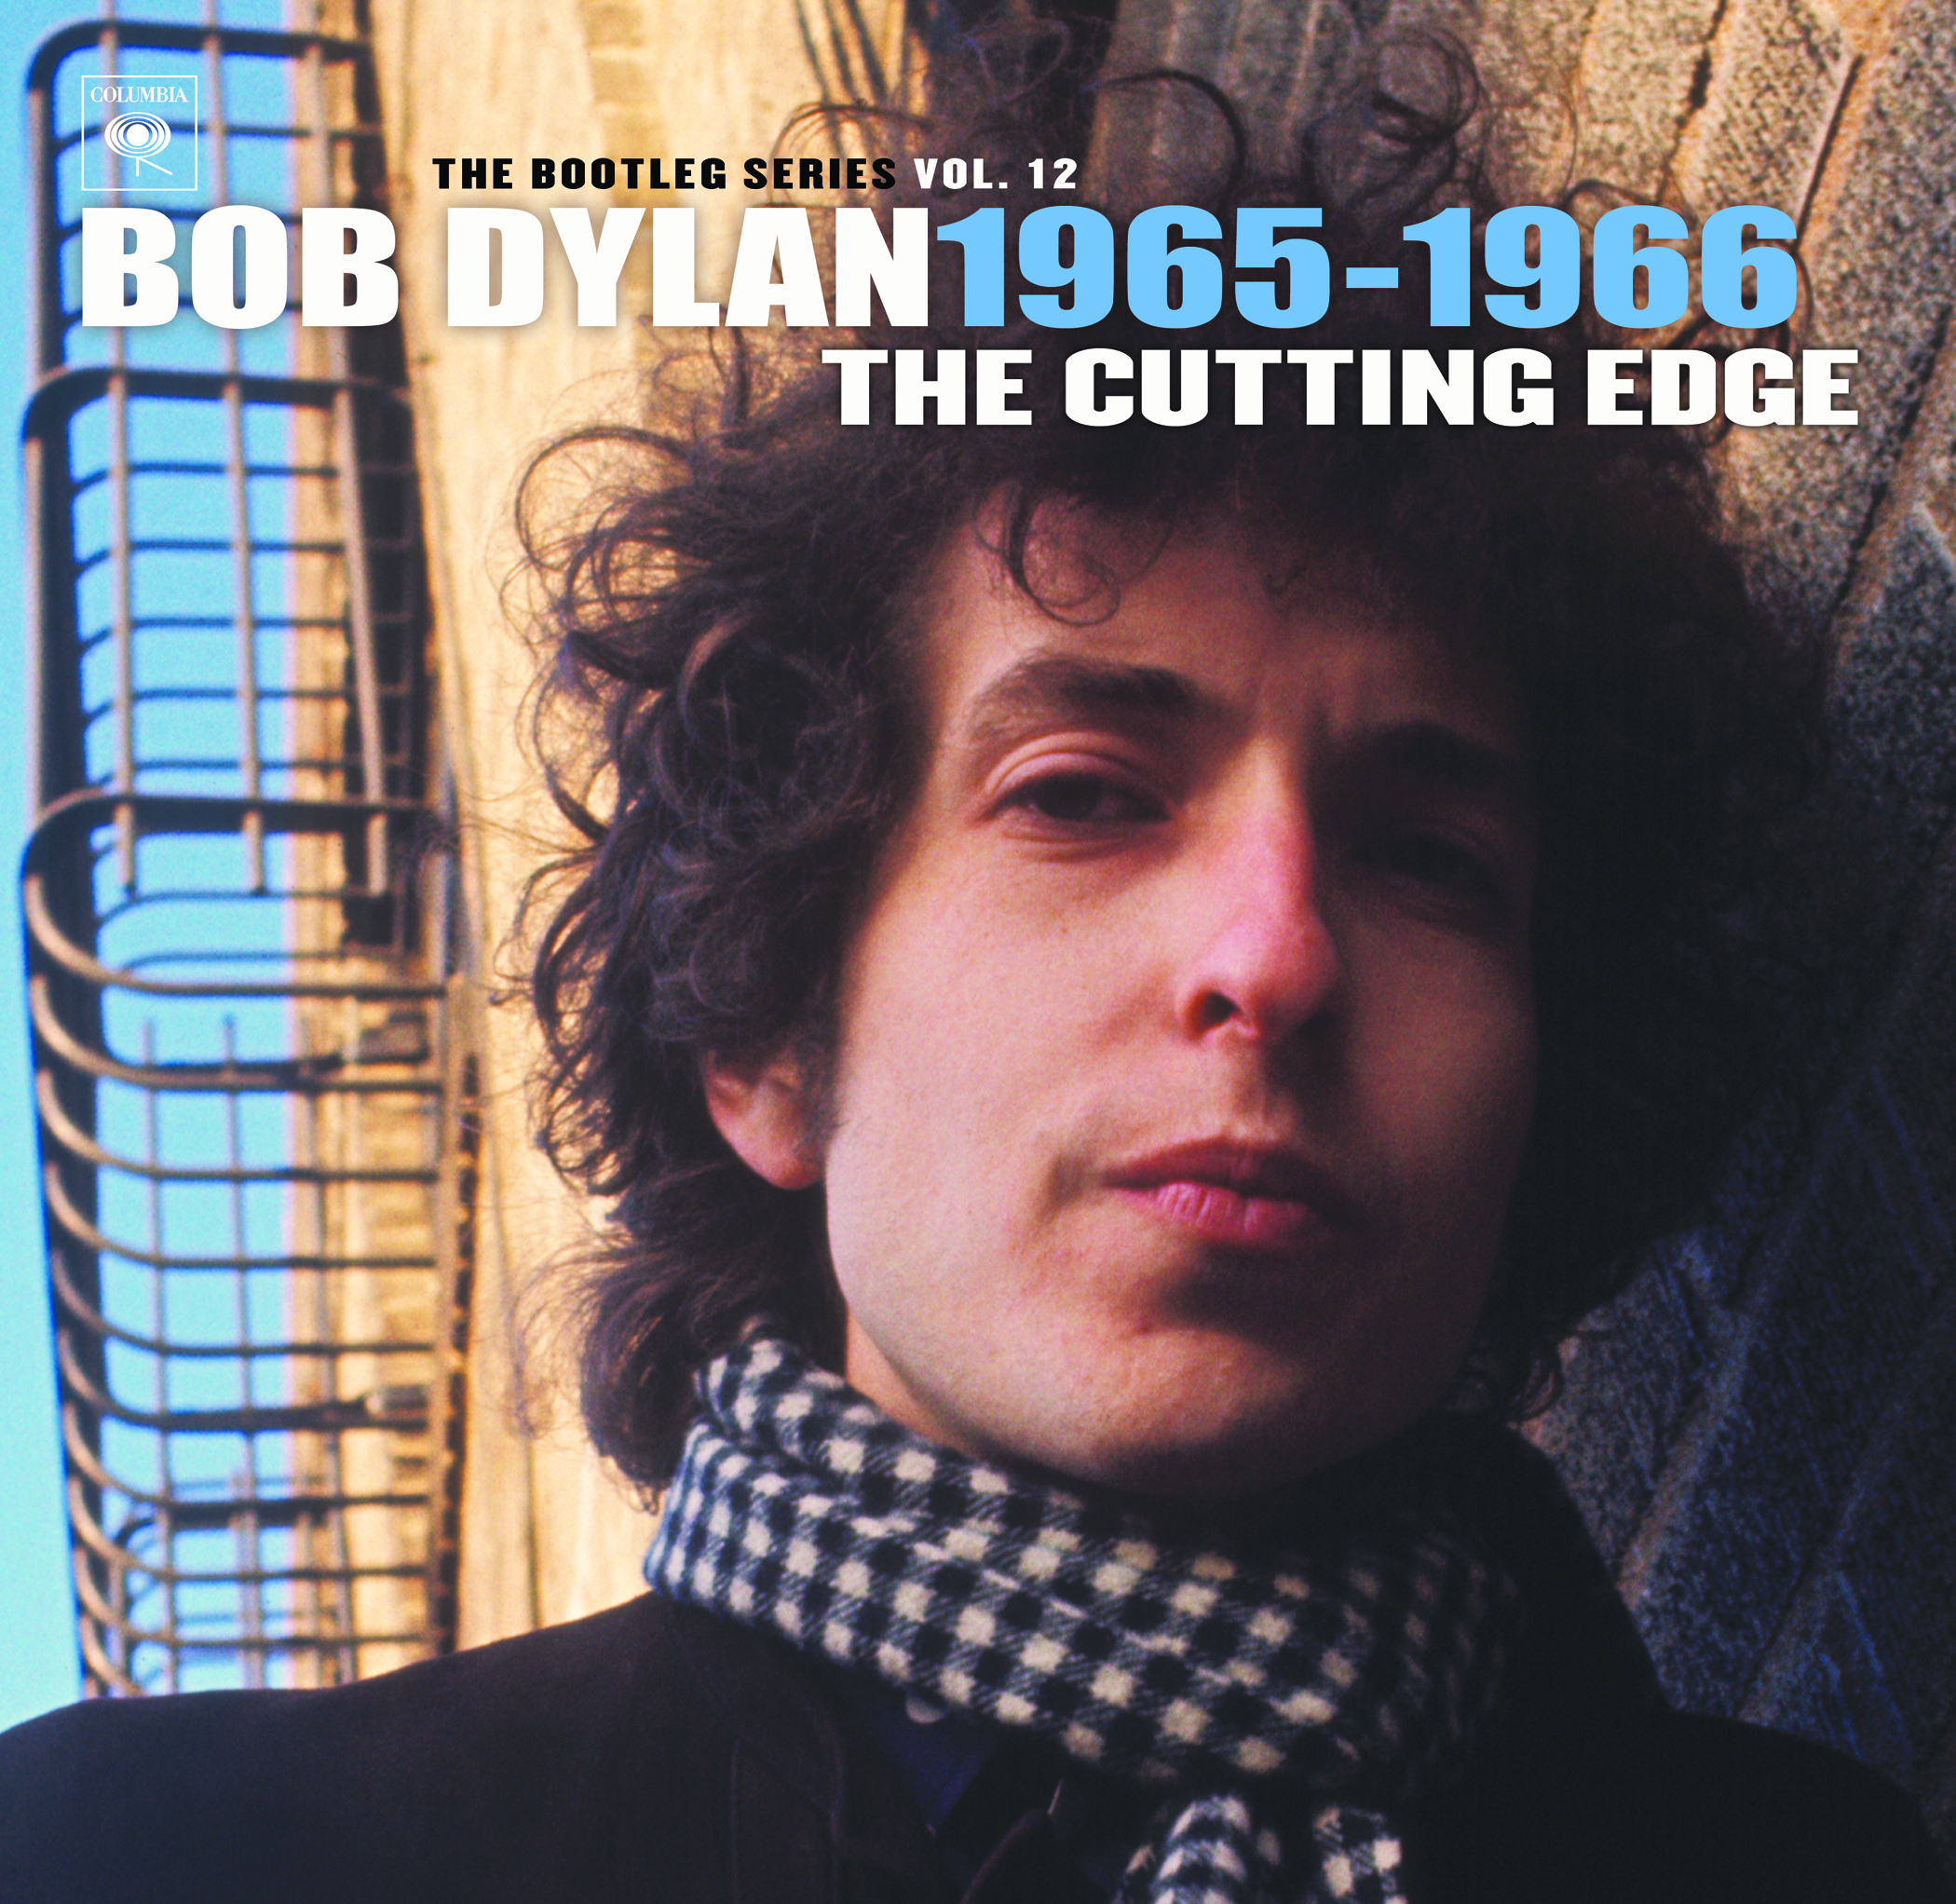 Listen To Take 8 Of Bob Dylan's 'Leopard-Skin Pill-Box Hat' Off 'The Cutting Edge'